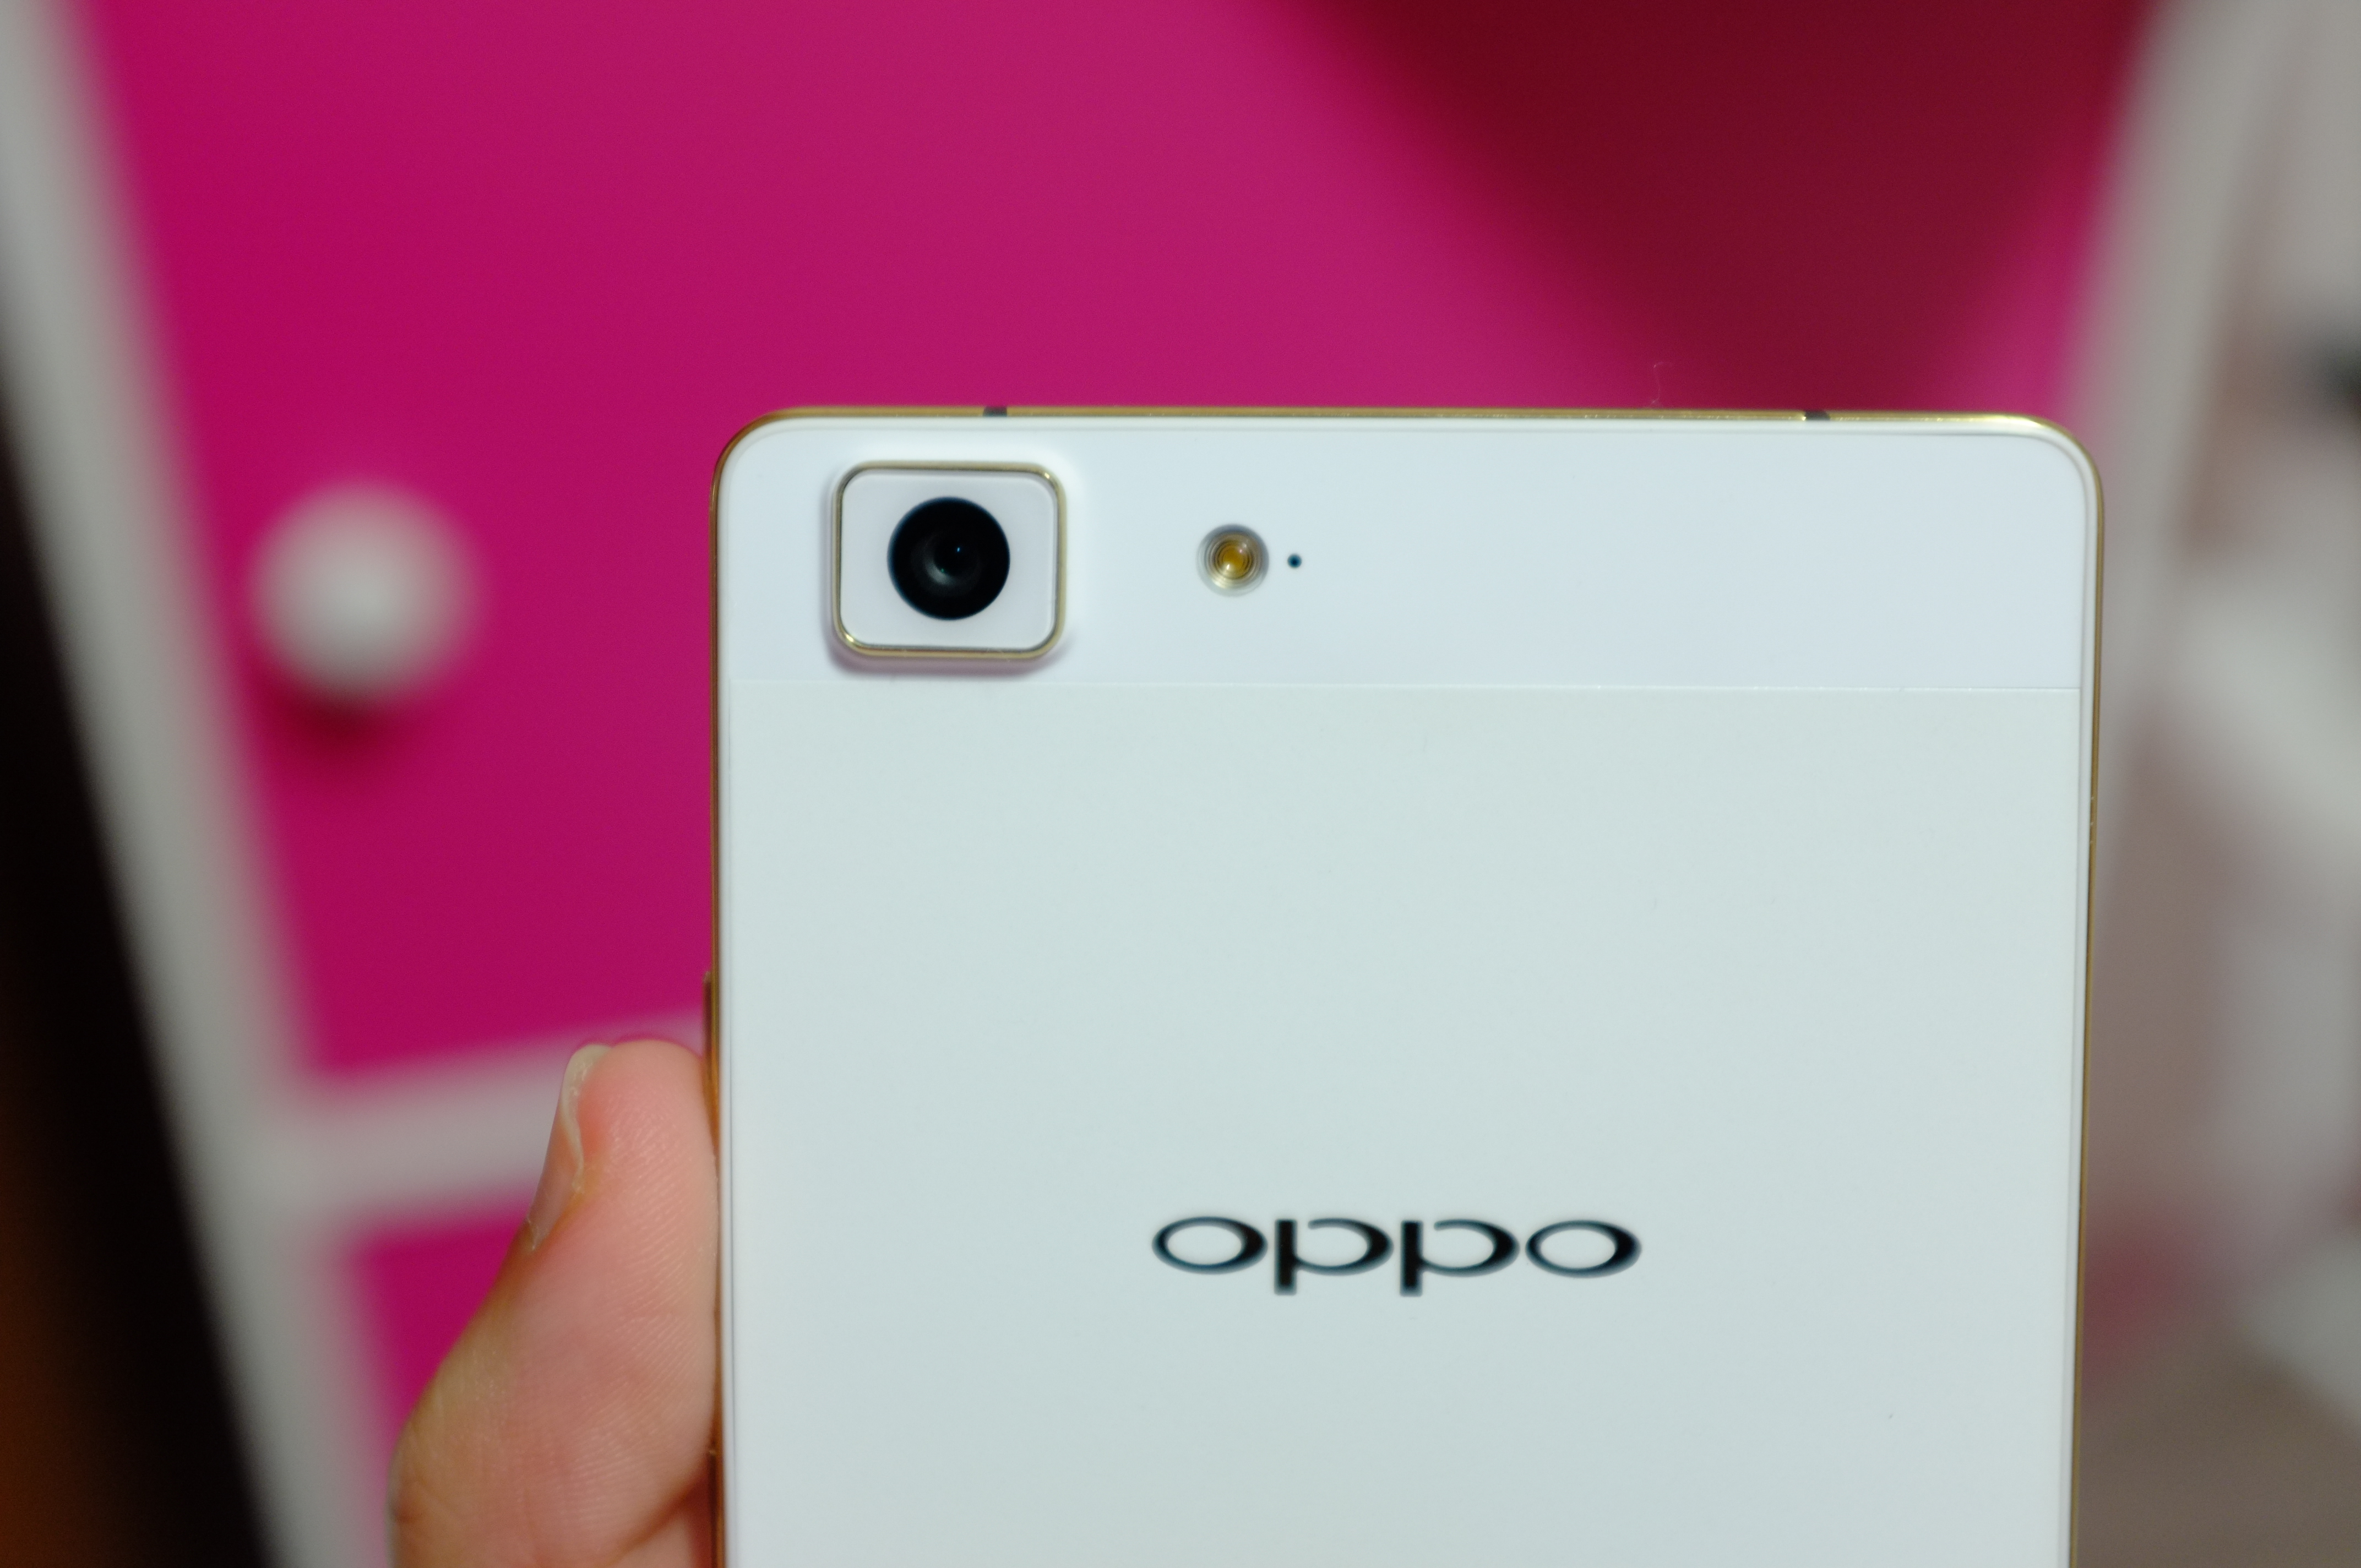 [REVIEW] OPPO R5 – The Slimmest Smartphone In The World